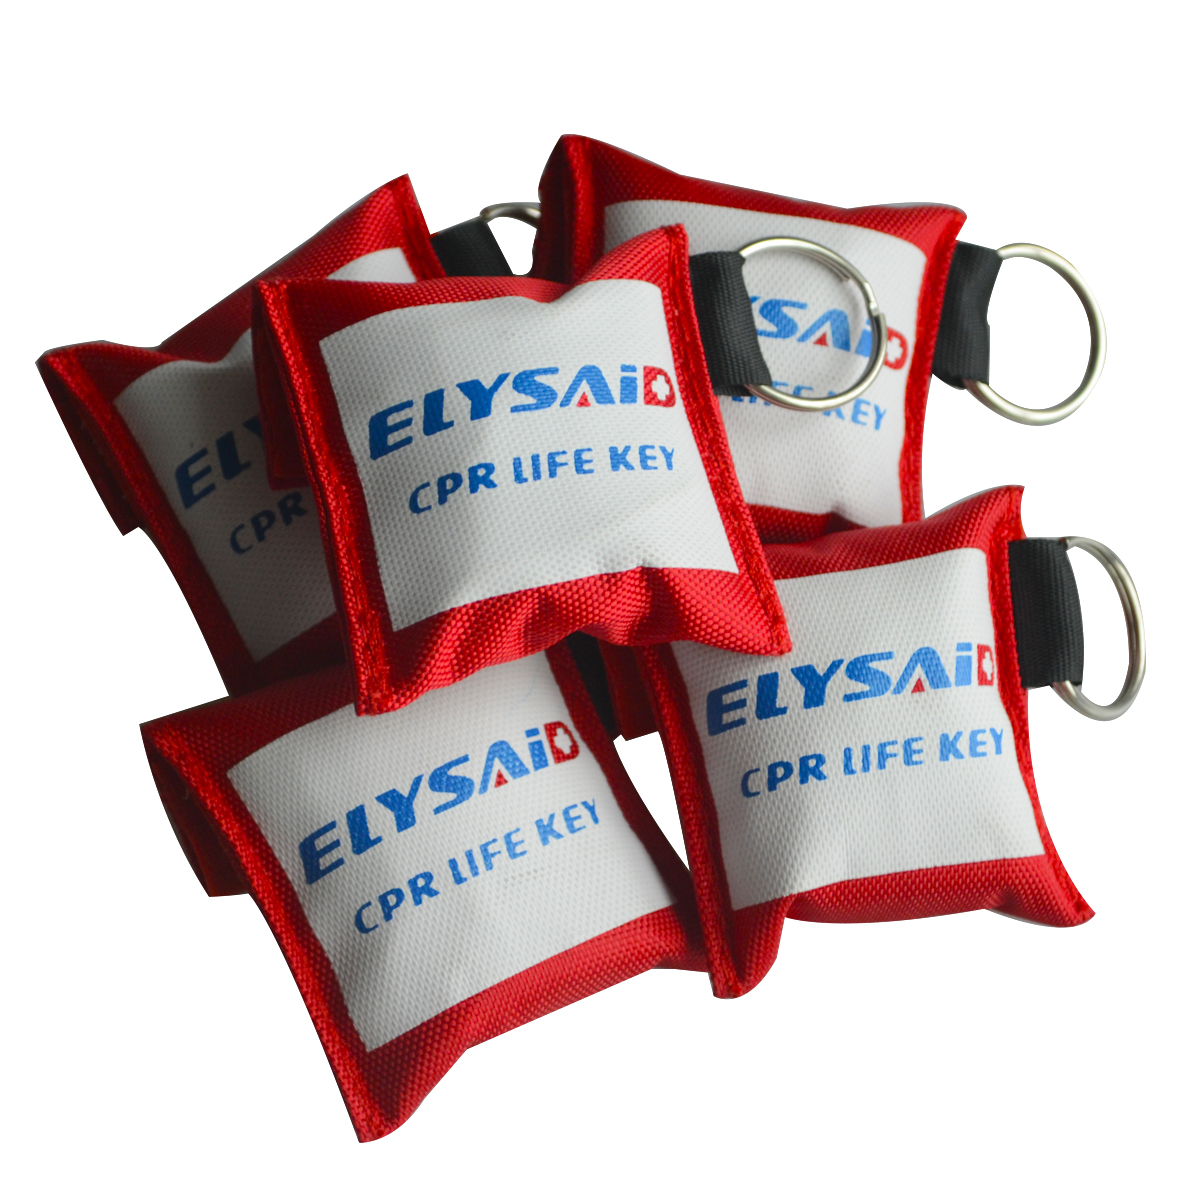 Health Care 100Pcs/Lot CPR Resuscitator Mask CPR Face Shield Keychain One-way Valve With Latex Gloves First Aid Survival Kit 180pcs pack cpr mask cpr face shield with one way valve keychain keyring mask for emergency rescue first aid survival kits